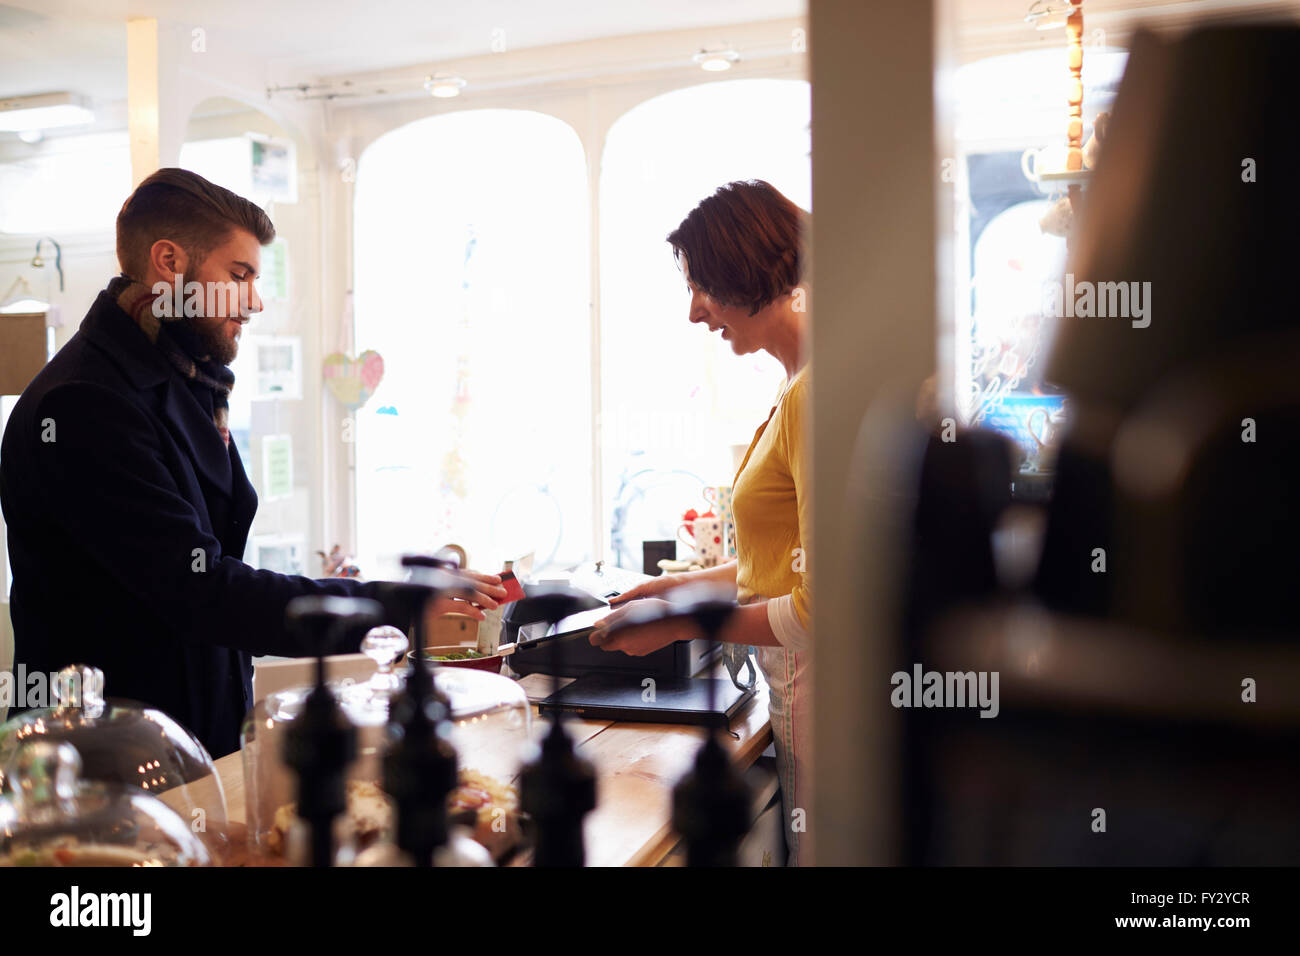 Customer In Cafe Paying Using Reader On Digital Tablet - Stock Image